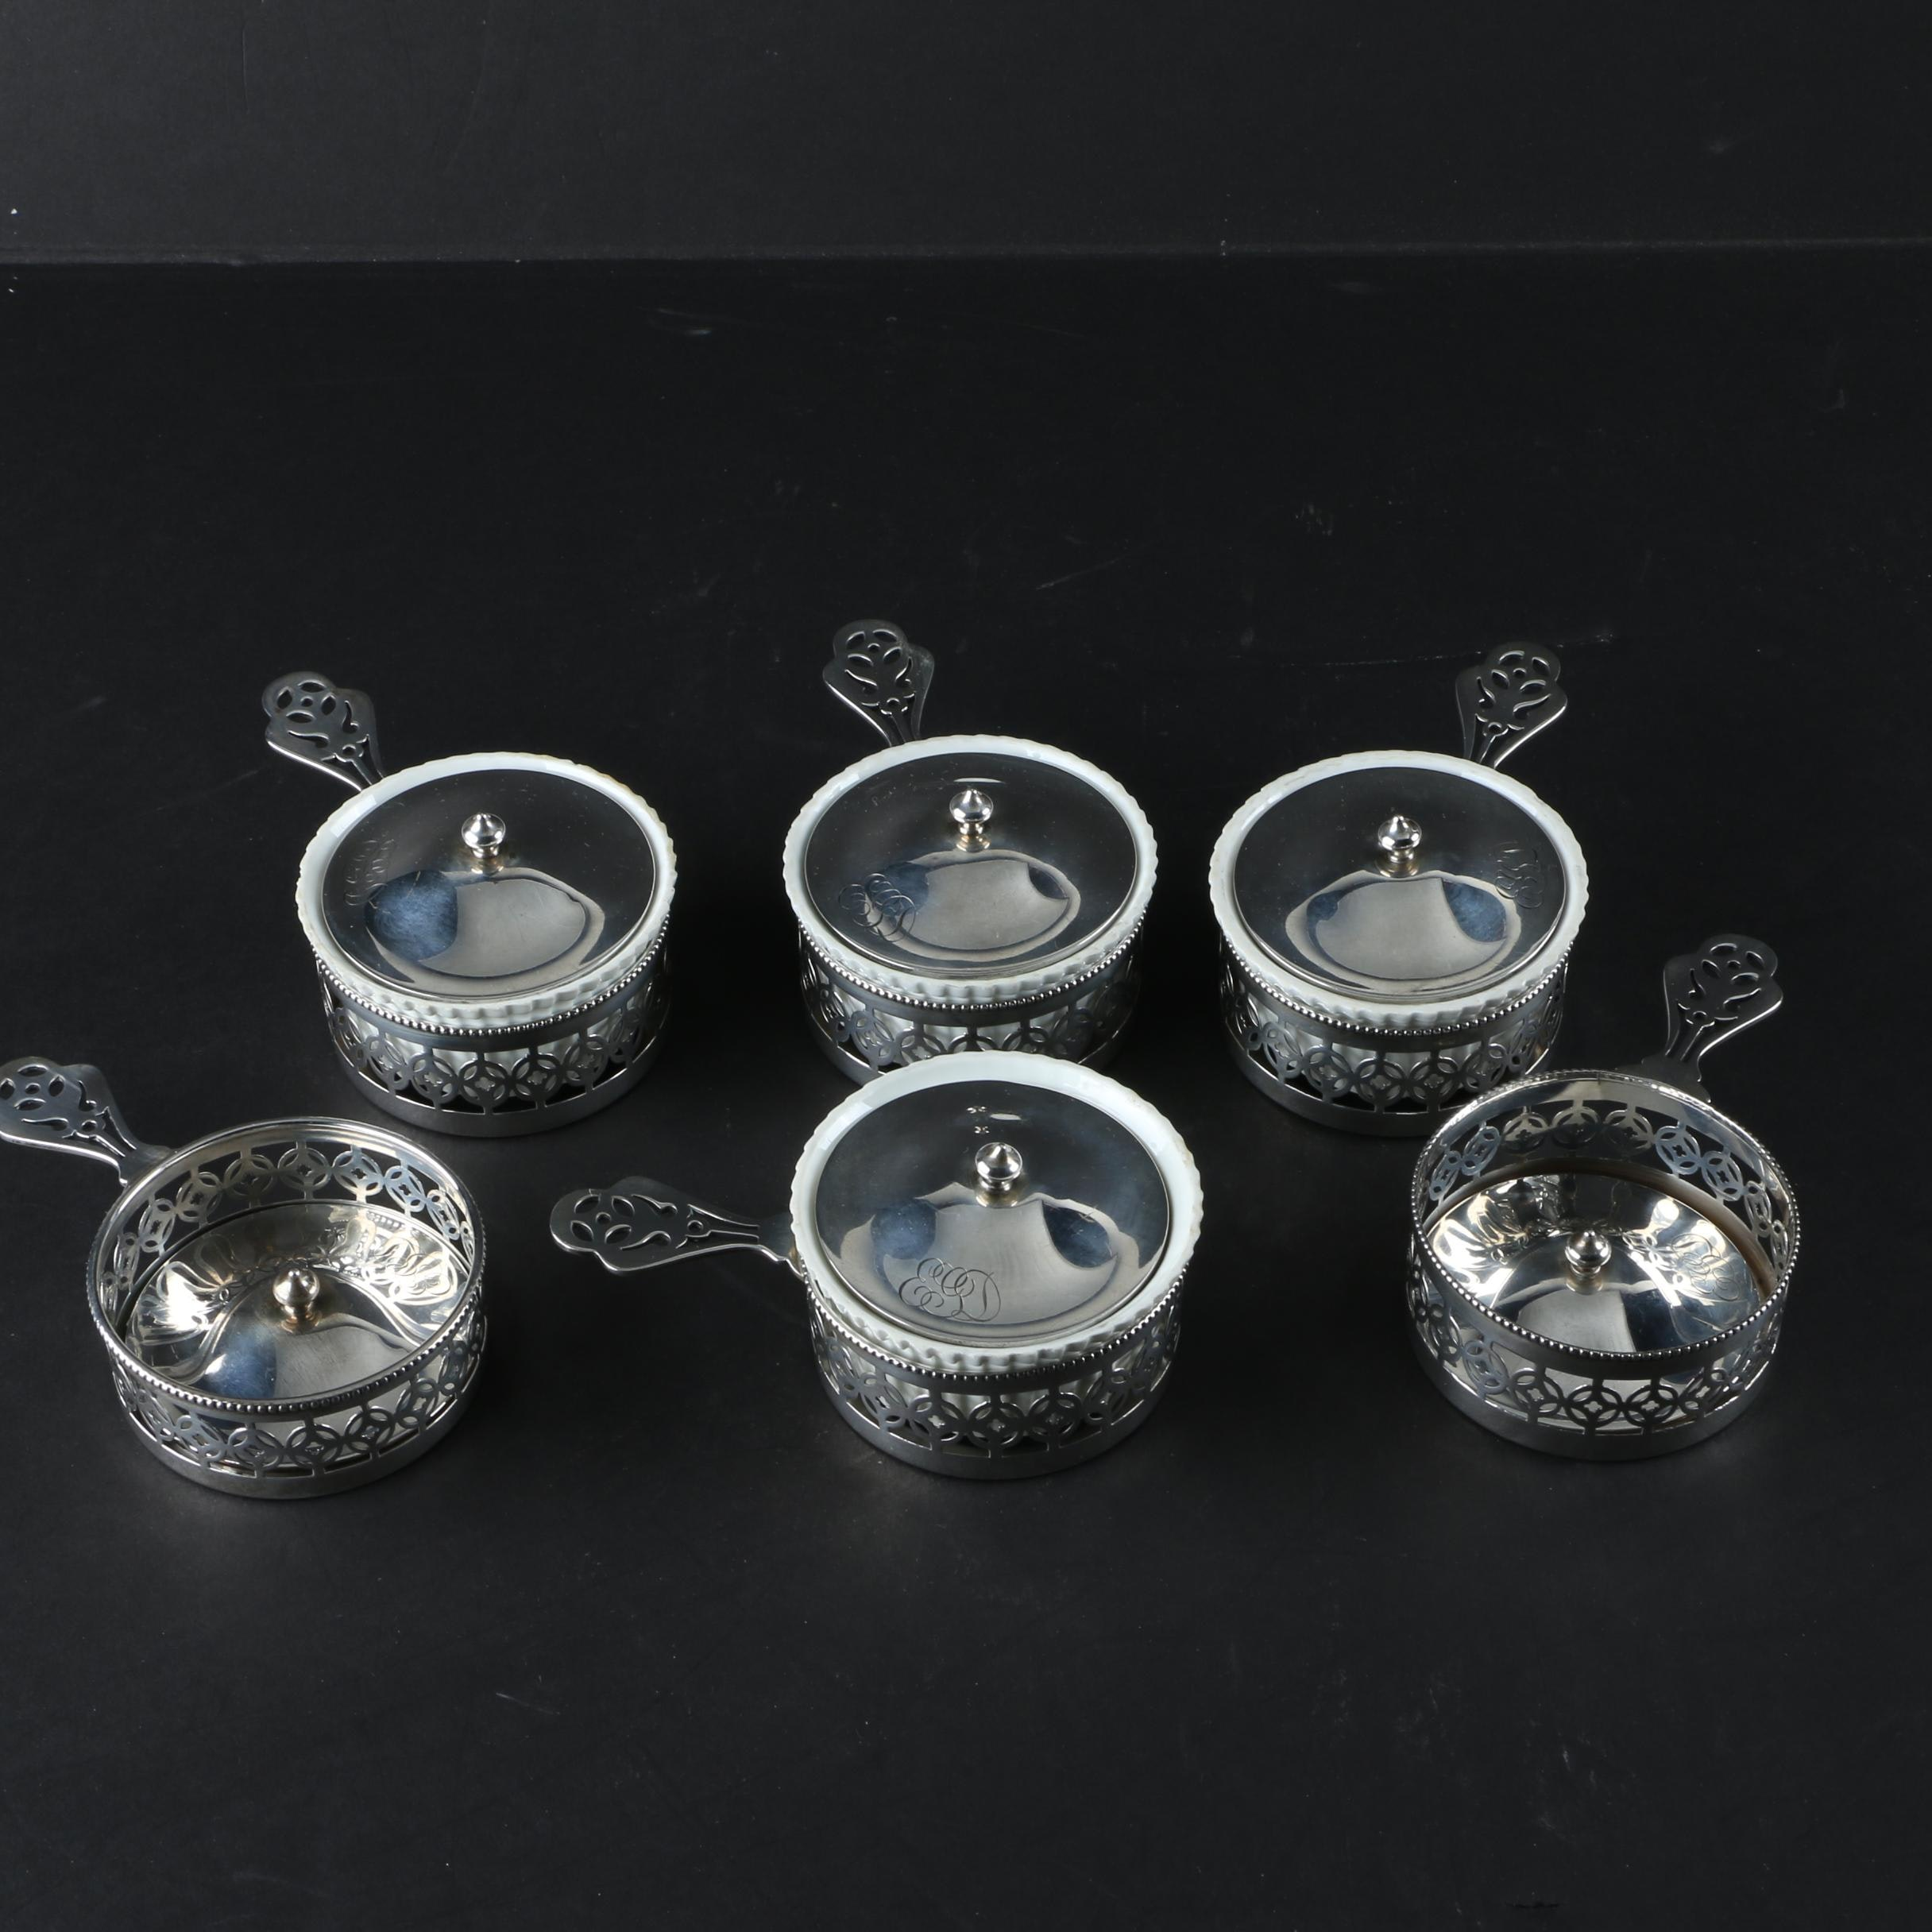 Gorham Mfg. Co. Sterling Silver Ramekin Holders with Ribbed Porcelain Liners